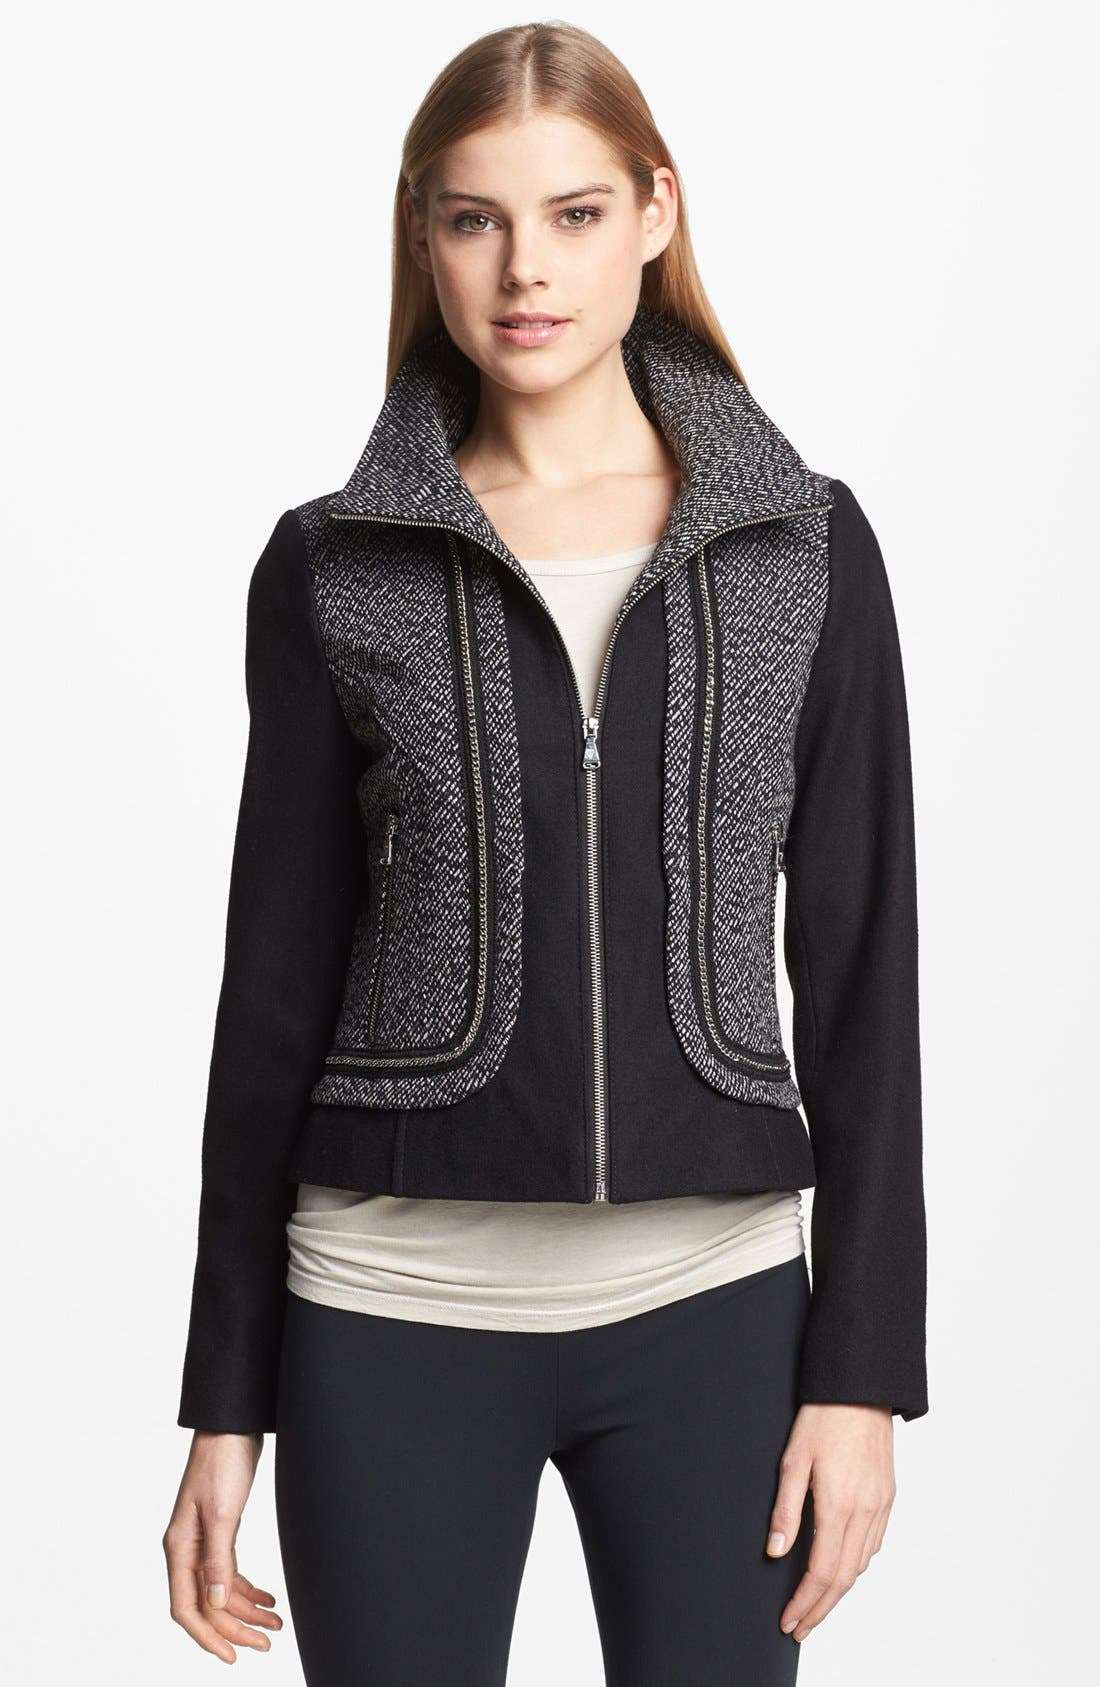 Alternate Image 1 Selected - GUESS Zip Front Mixed Media Jacket (Regular & Petite)